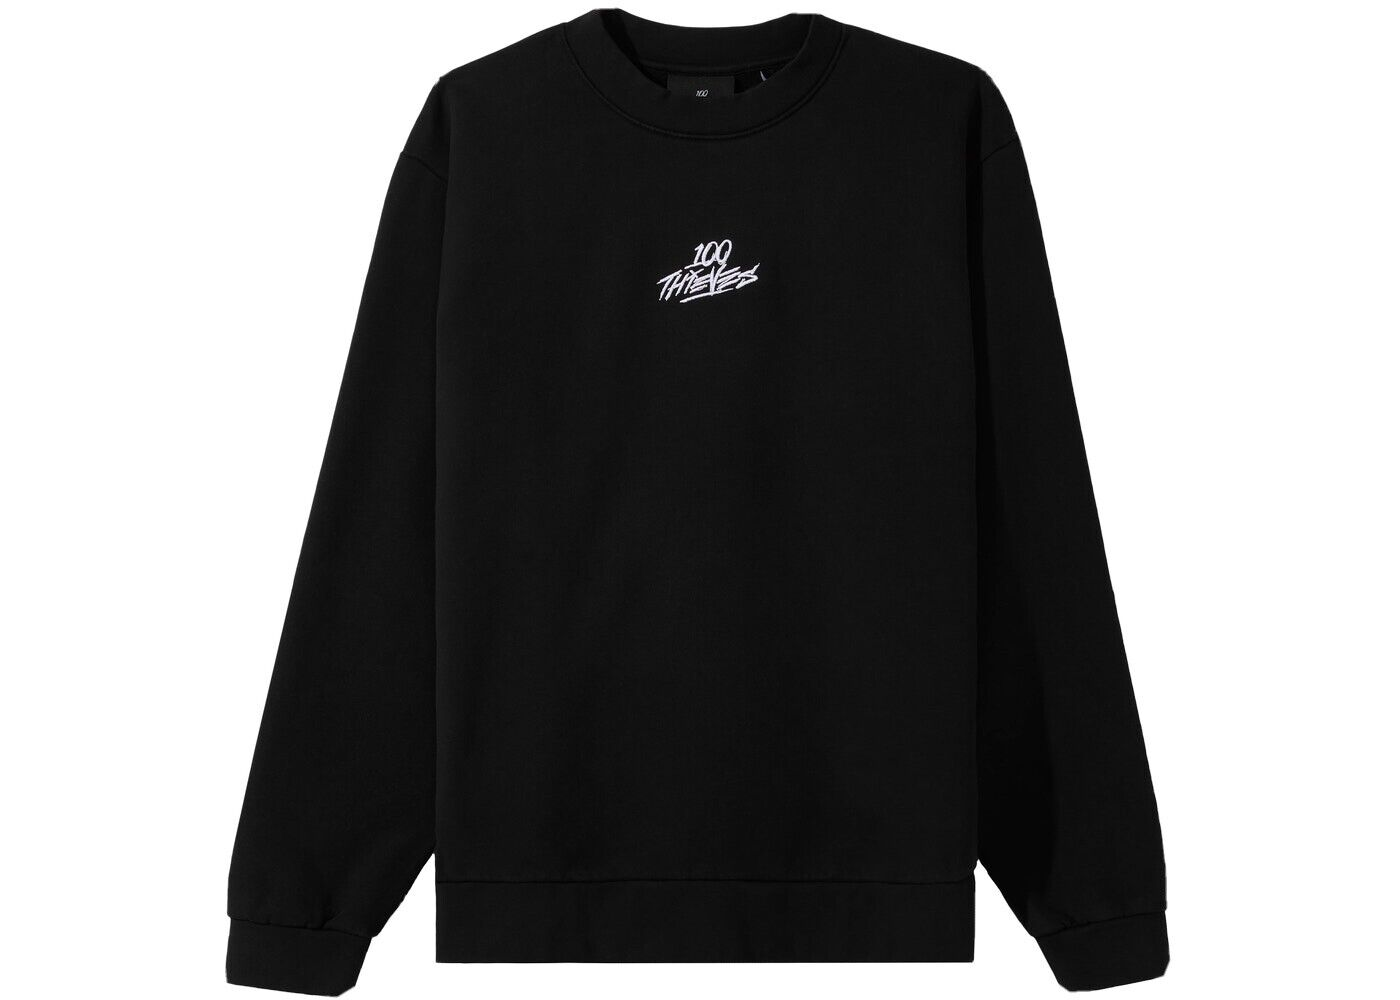 100 Thieves Enter Infinity Crewneck Sweater - Large, Brand New